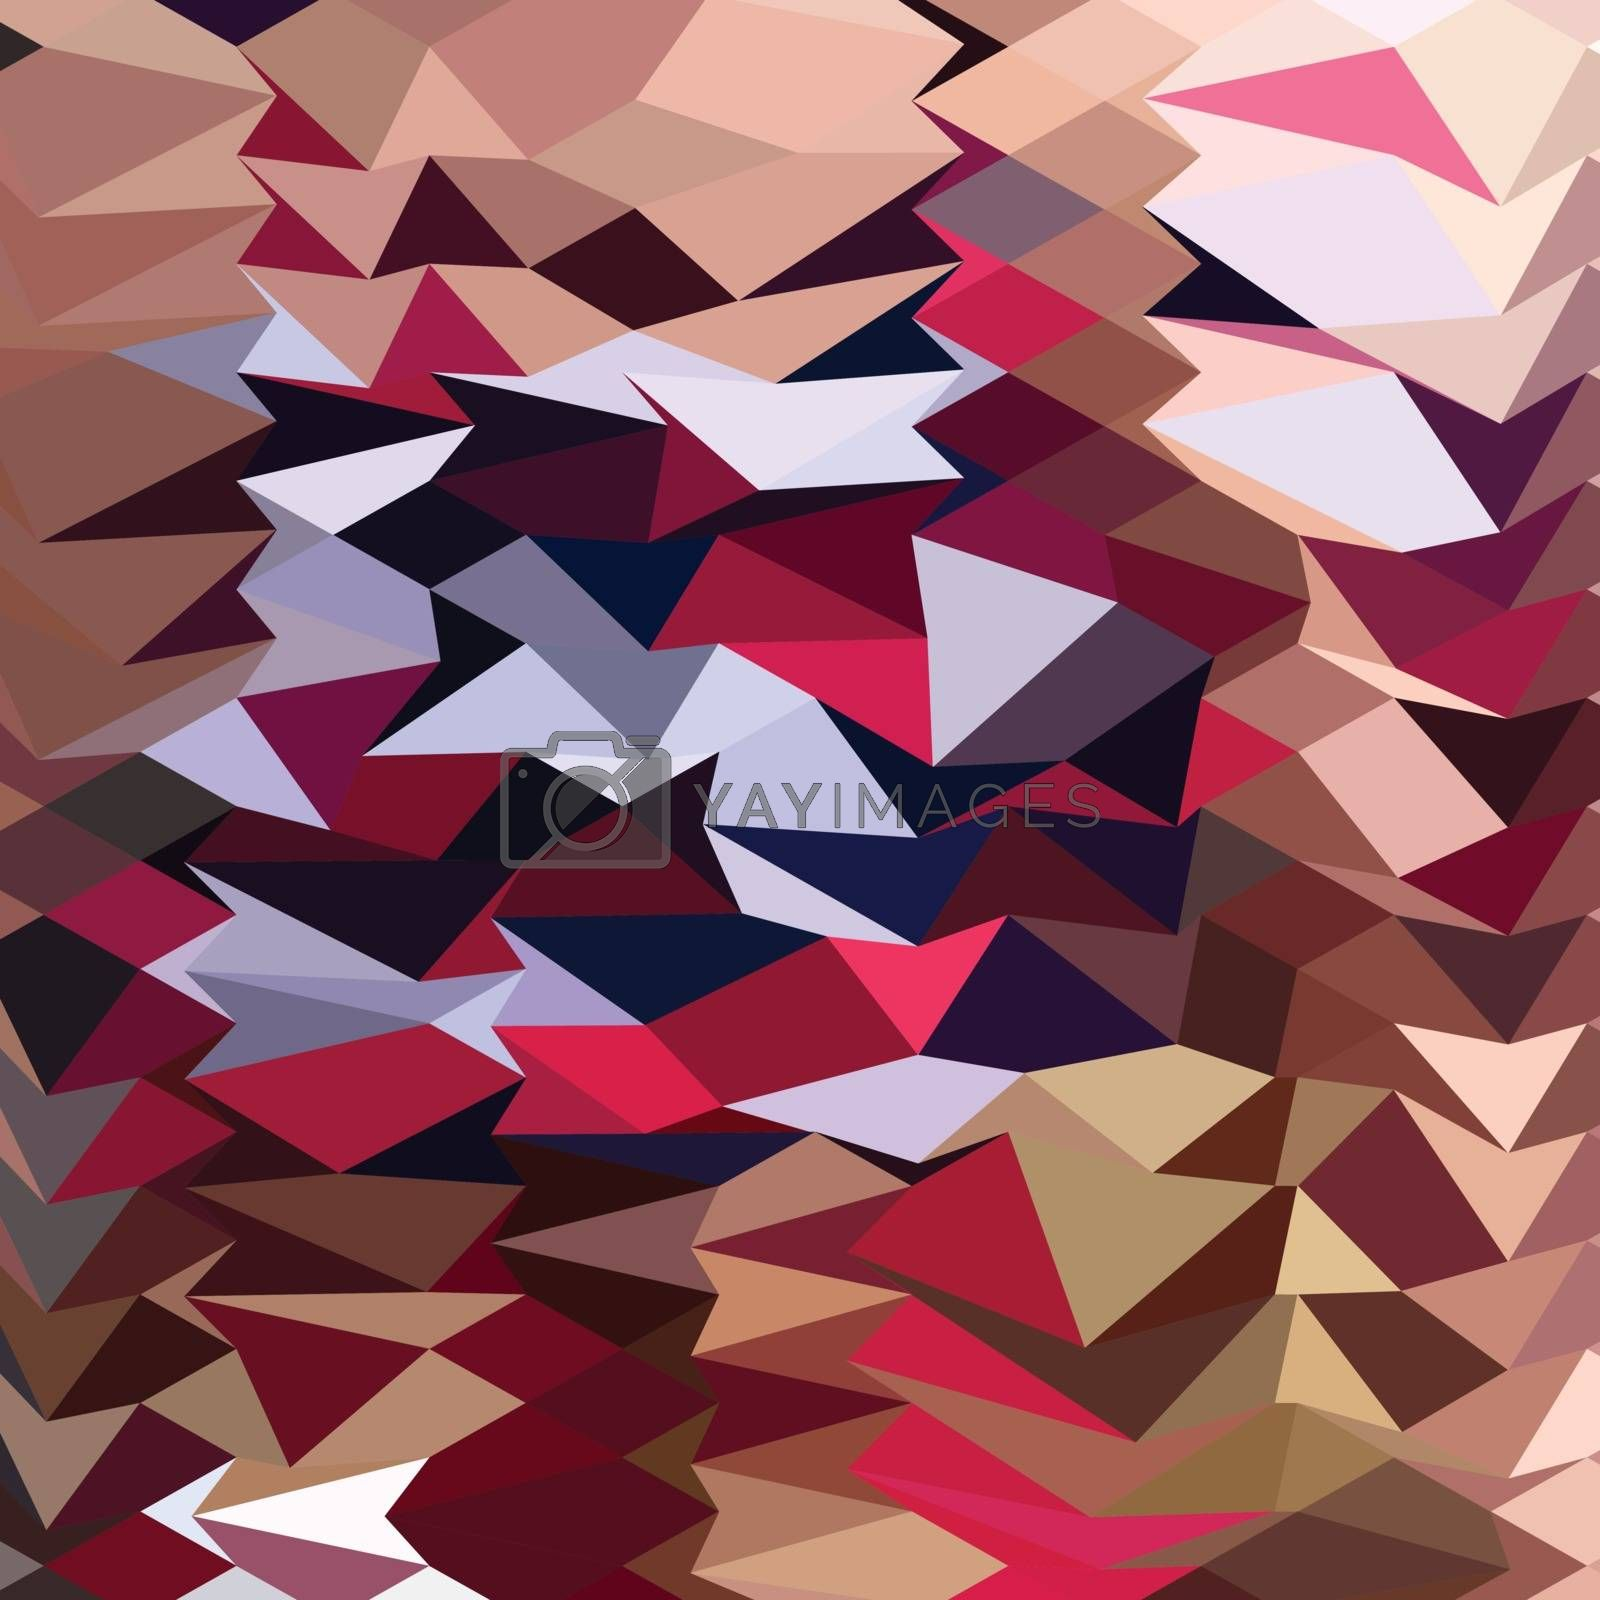 Low polygon style illustration of alabaster abstract background.